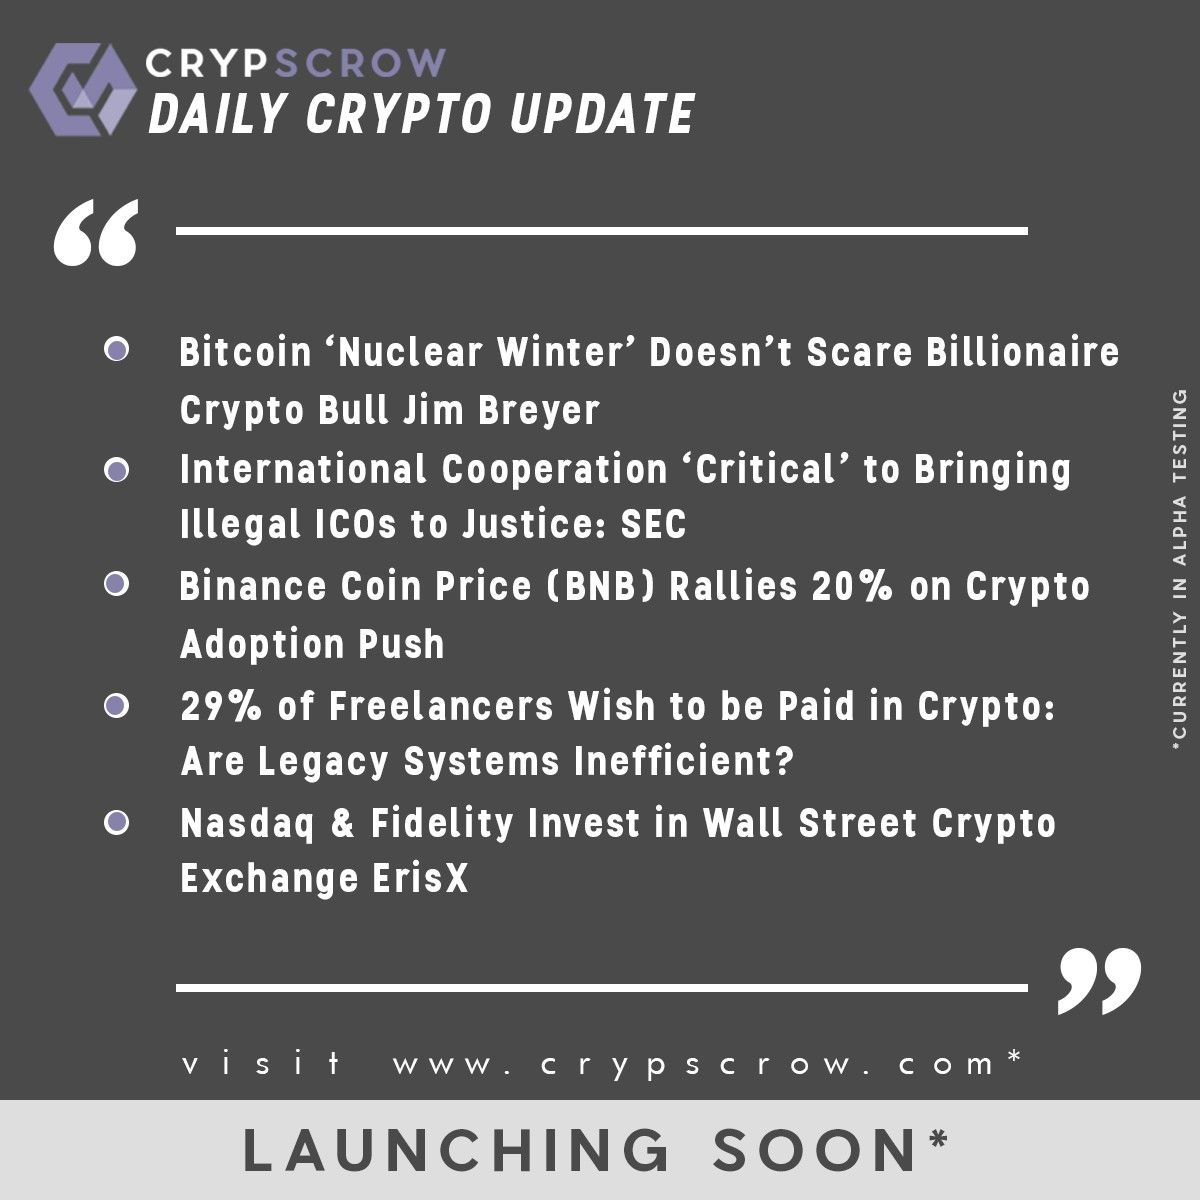 Dailycryptoupdate Cryptonews Crypscrow Bitcoin Nuclearwinter